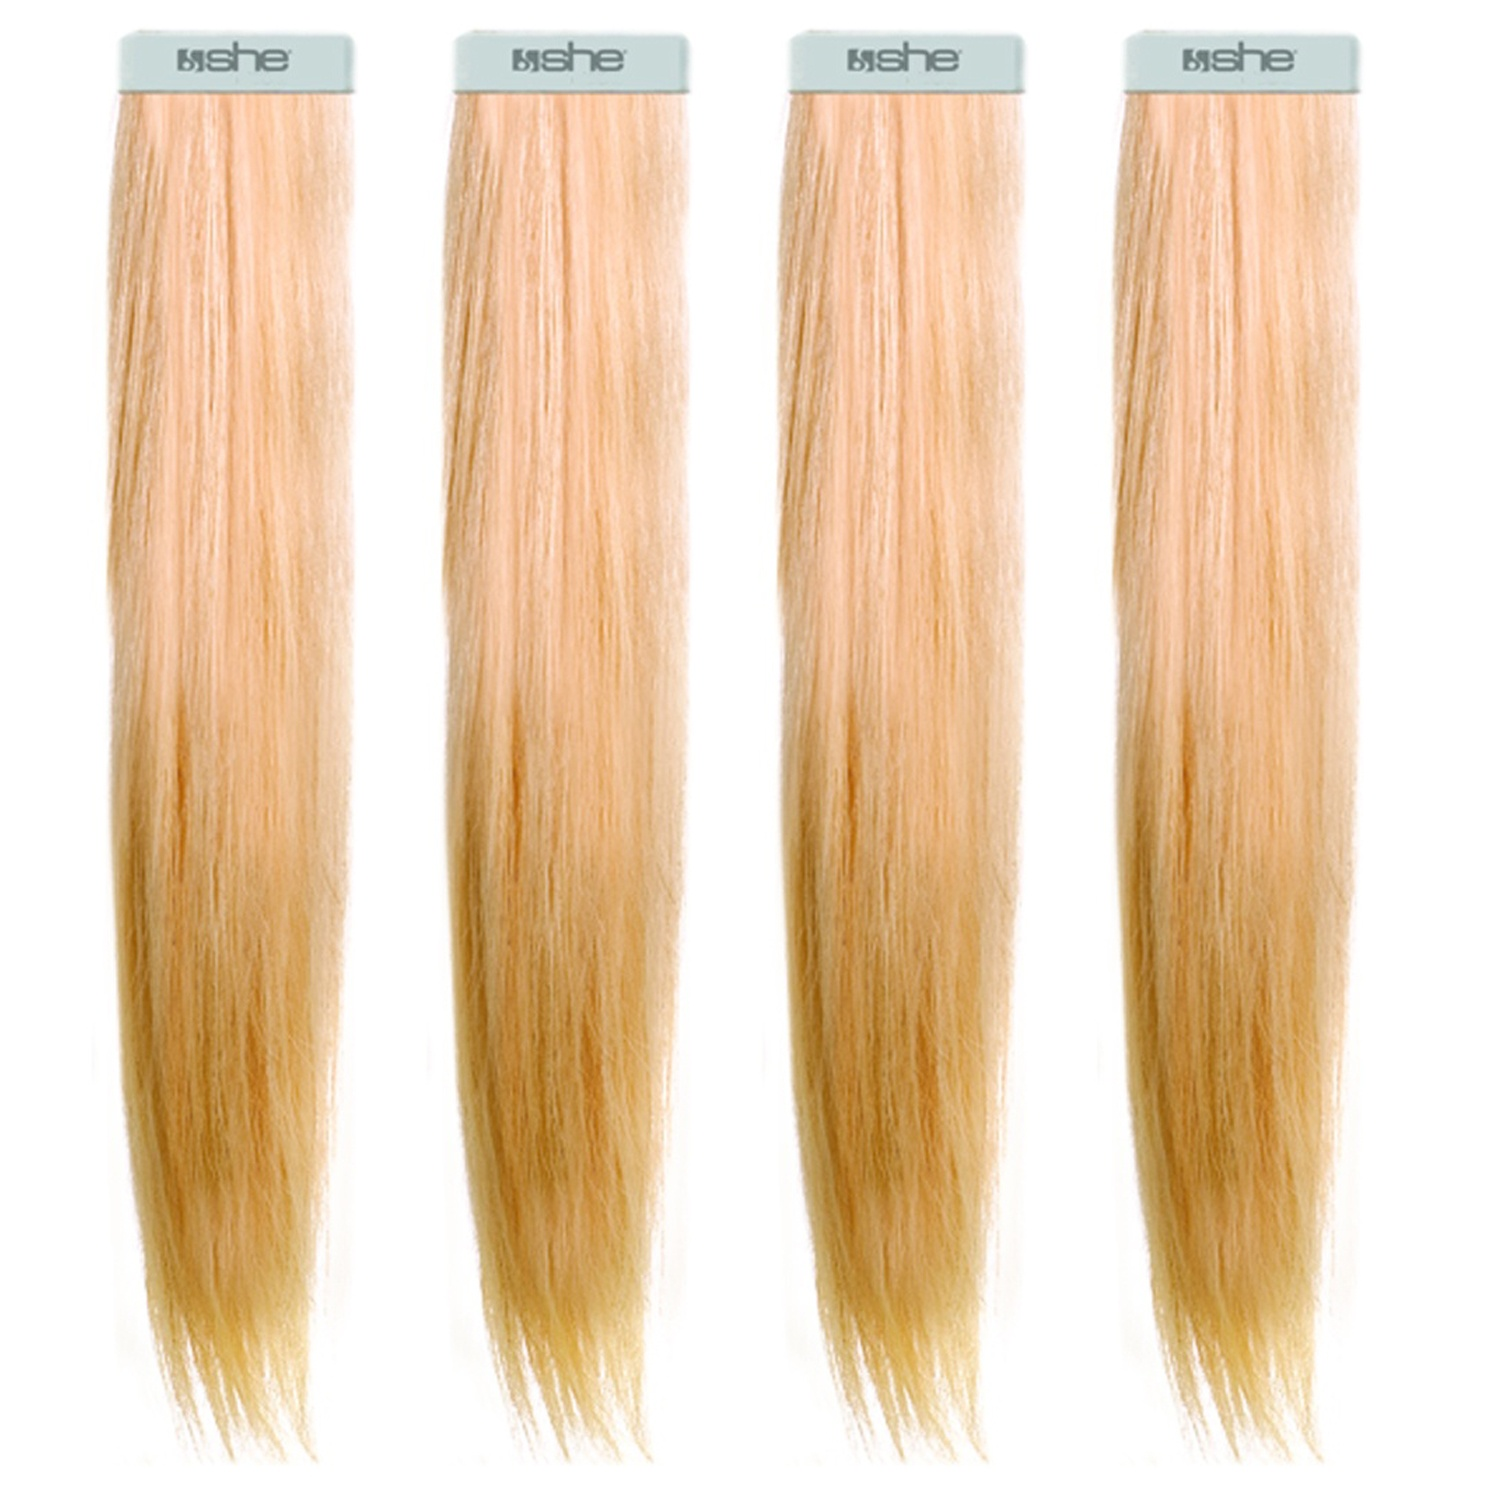 she by SO.CAP. Tape Extensions 20   20/20 cm light blonde nature sand